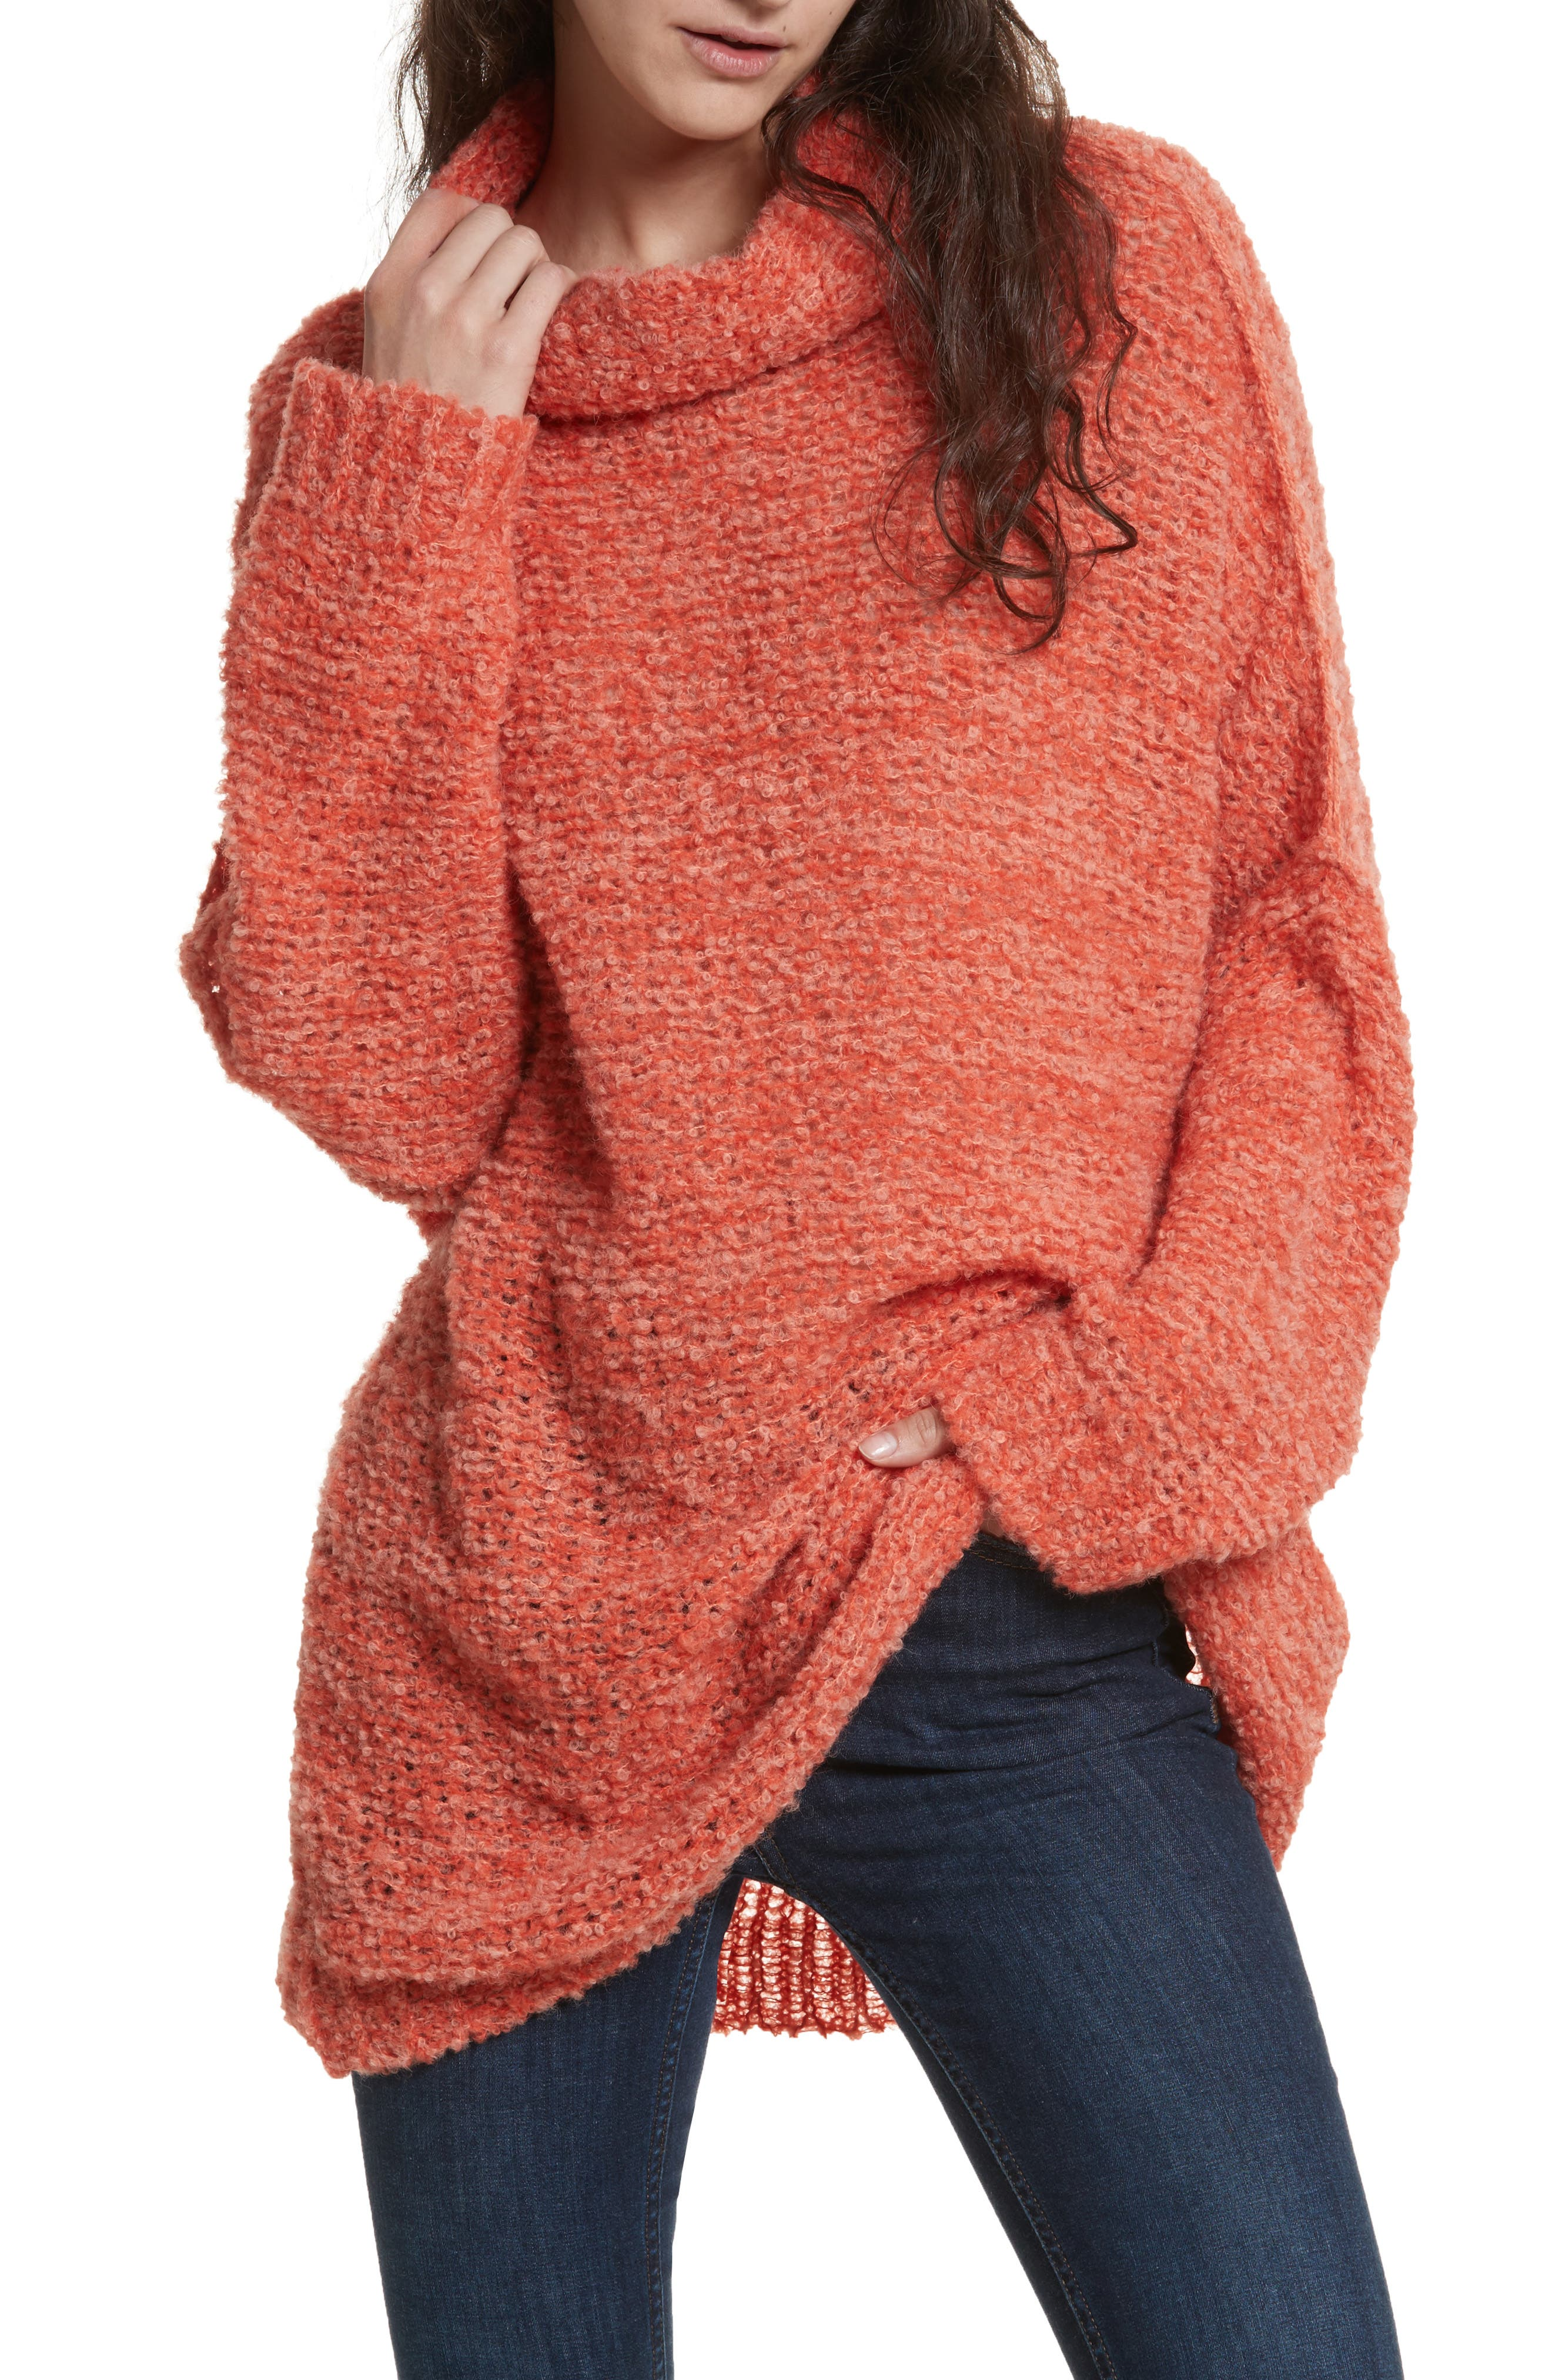 Alternate Image 1 Selected - Free People 'She's All That' Knit Turtleneck Sweater